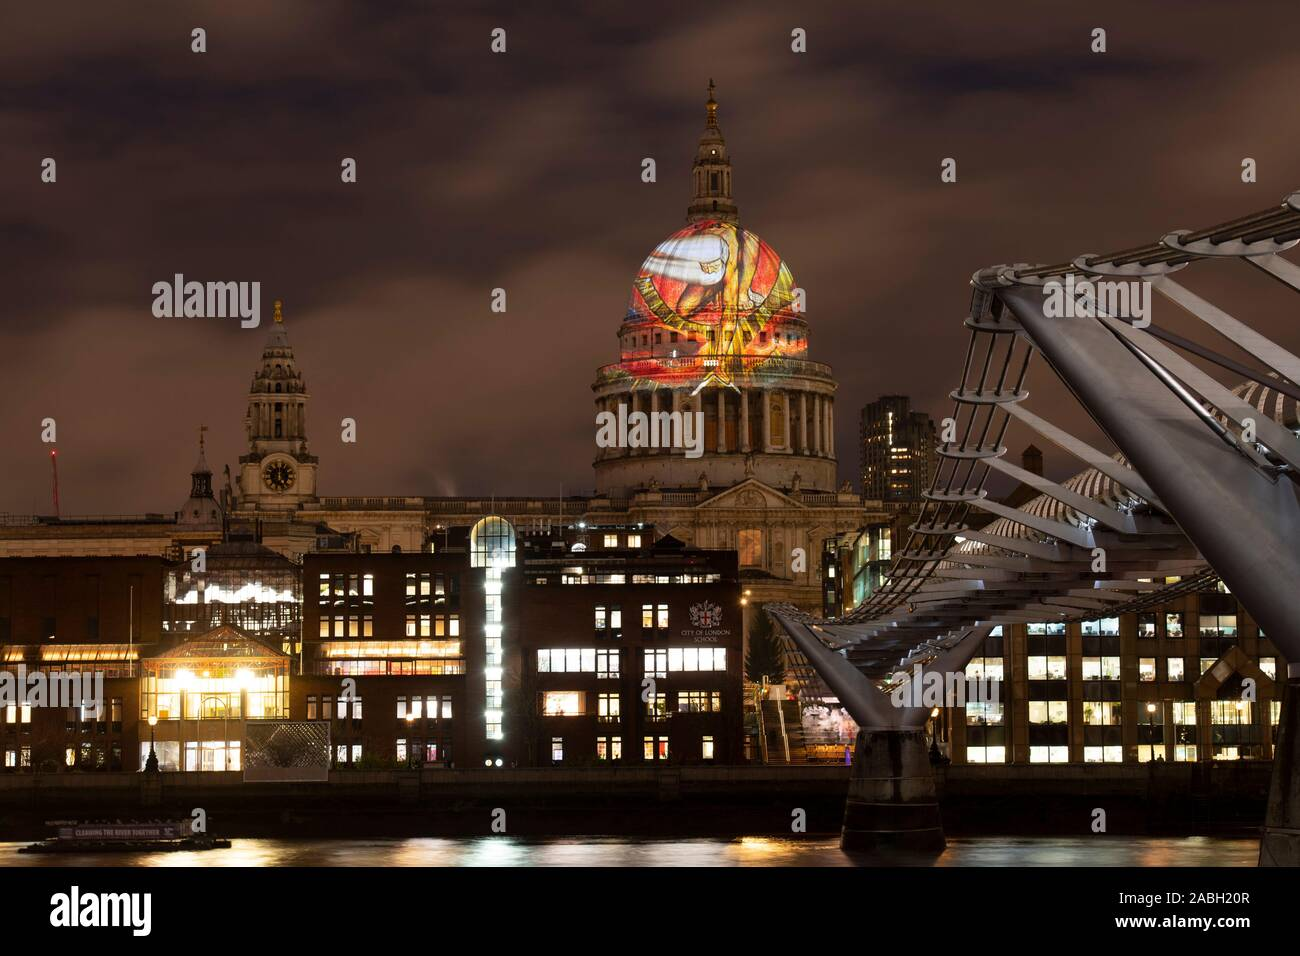 St Pauls Cathedral, London, UK. 27th November 2019. William Blake's final masterpiece 'Ancient of Days' is projected onto the iconic dome of St Paul's Cathedral, in celebration of the artist's birthday. The dramatic illustration, from 1827, was described by Blake as 'the best I have ever finished' and will be visible across London each evening throughout the weekend. Credit: Malcolm Park/Alamy Live News. Stock Photo